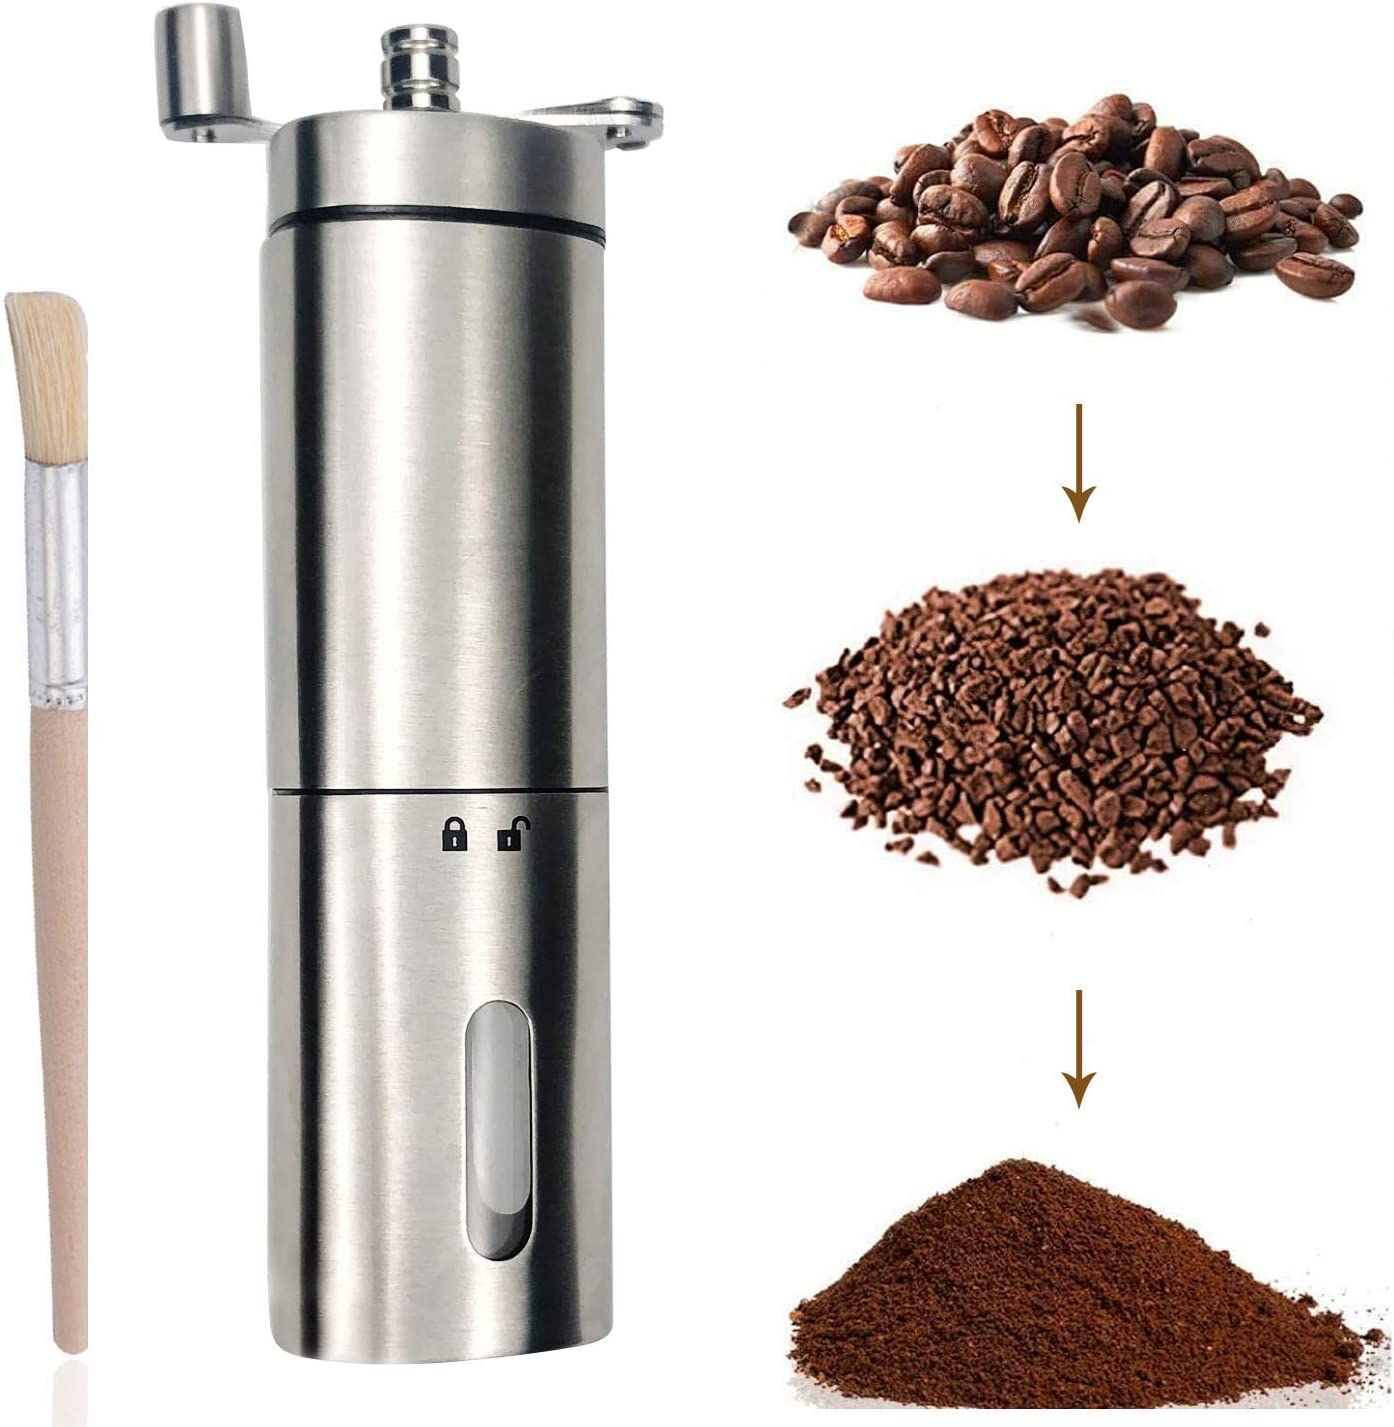 Manual Coffee Grinder Mesa Mall Portable Hand Grind Steel Milwaukee Mall Stainless